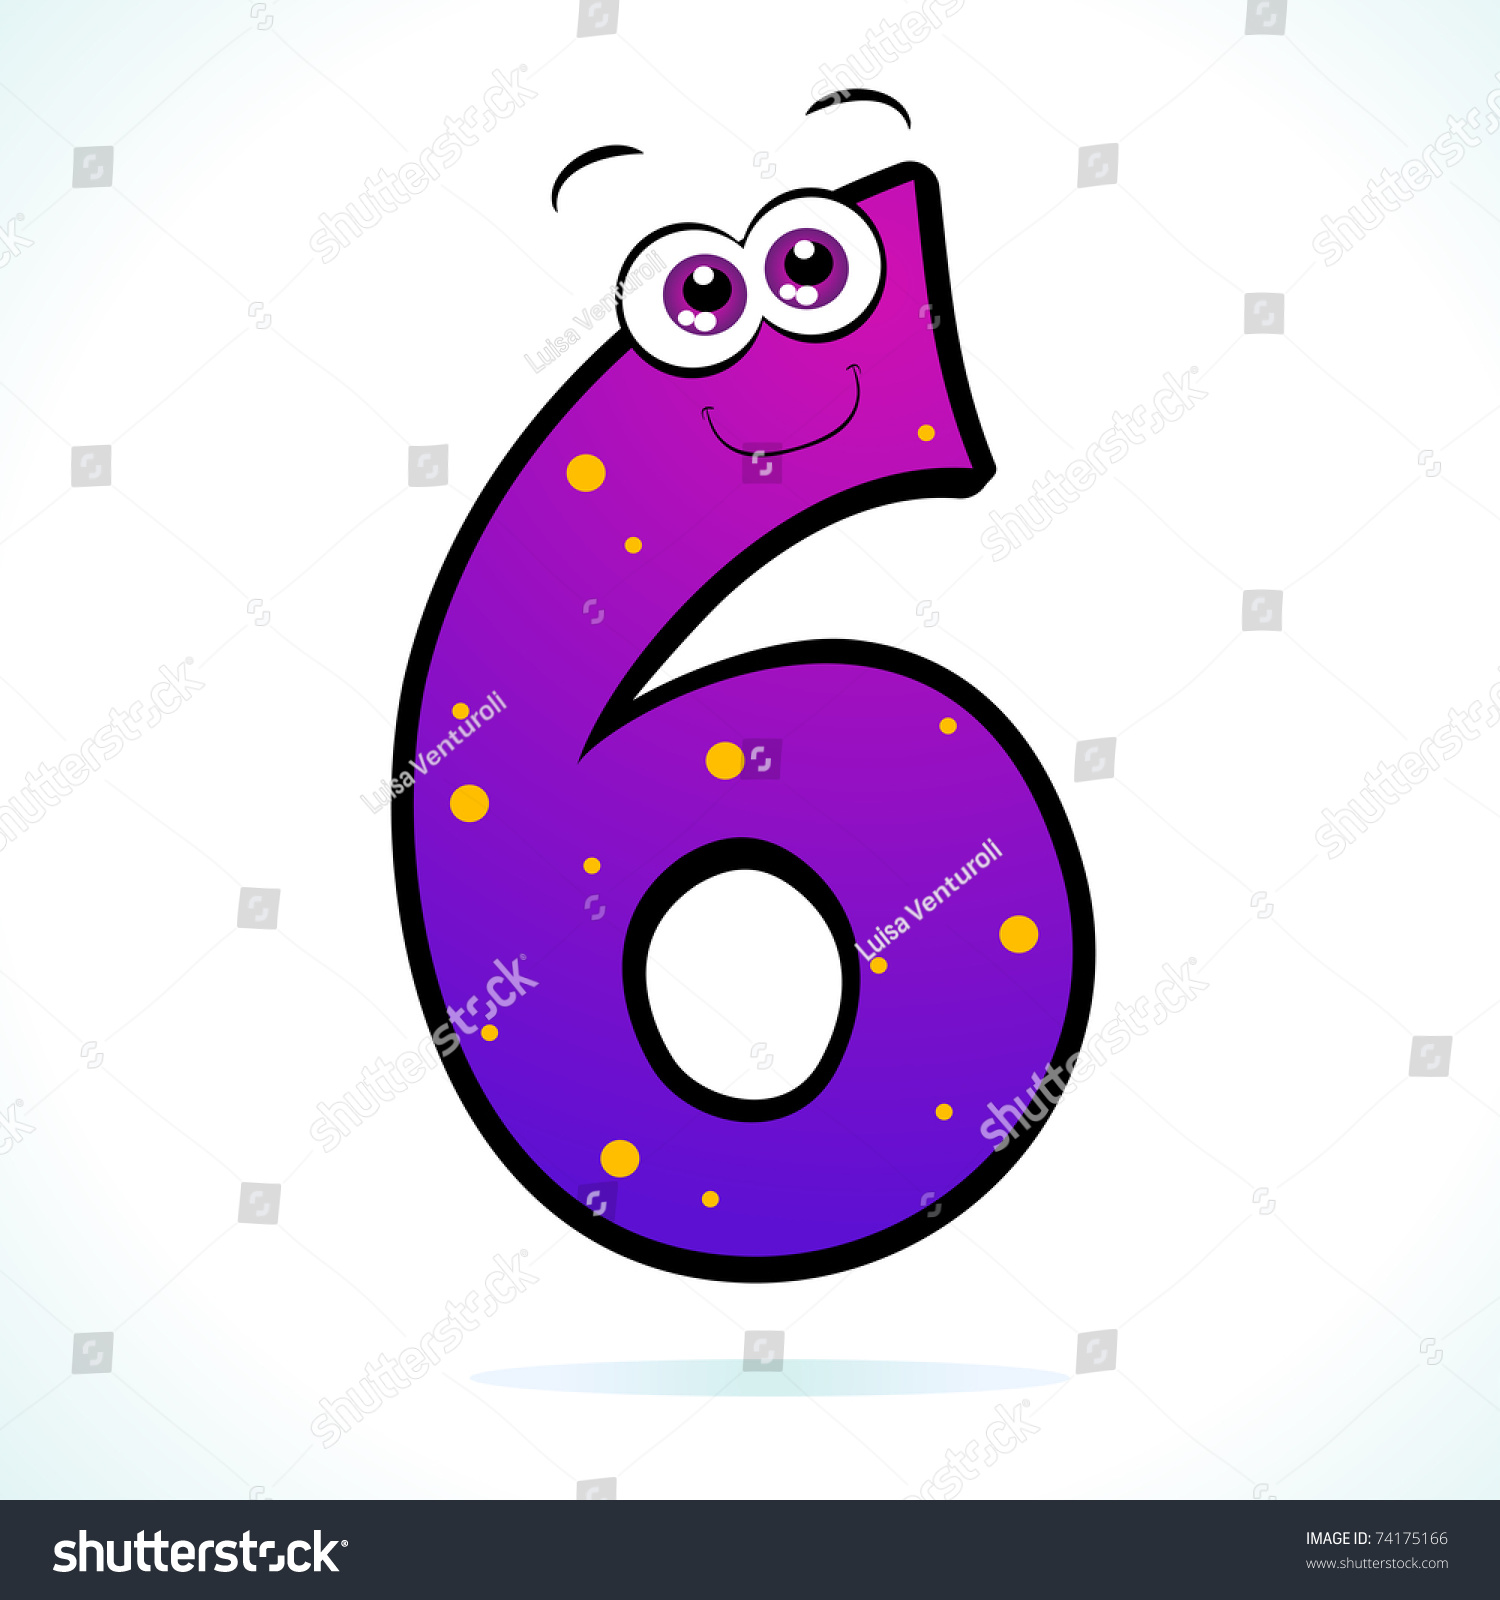 Number Six Represented Cartoon Style Vector Stock Vector Royalty Free 74175166